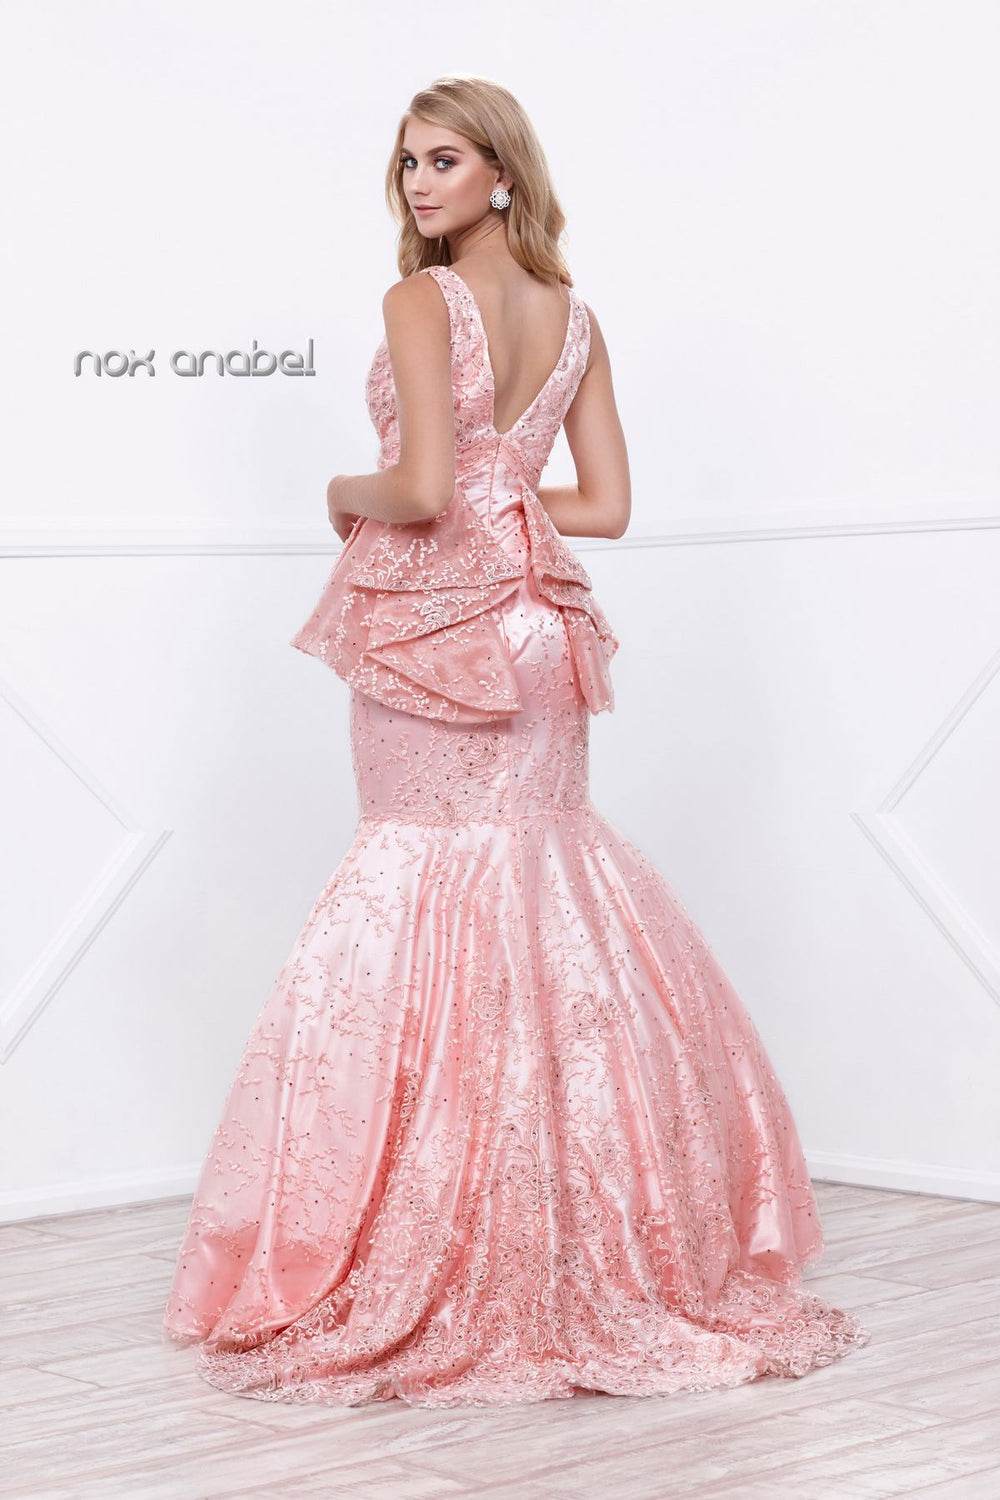 GLITTERING RHINESTONES EMBELLISHED RUFFLED PEPLUM EVENING GOWN 8311 BY NARIANNA